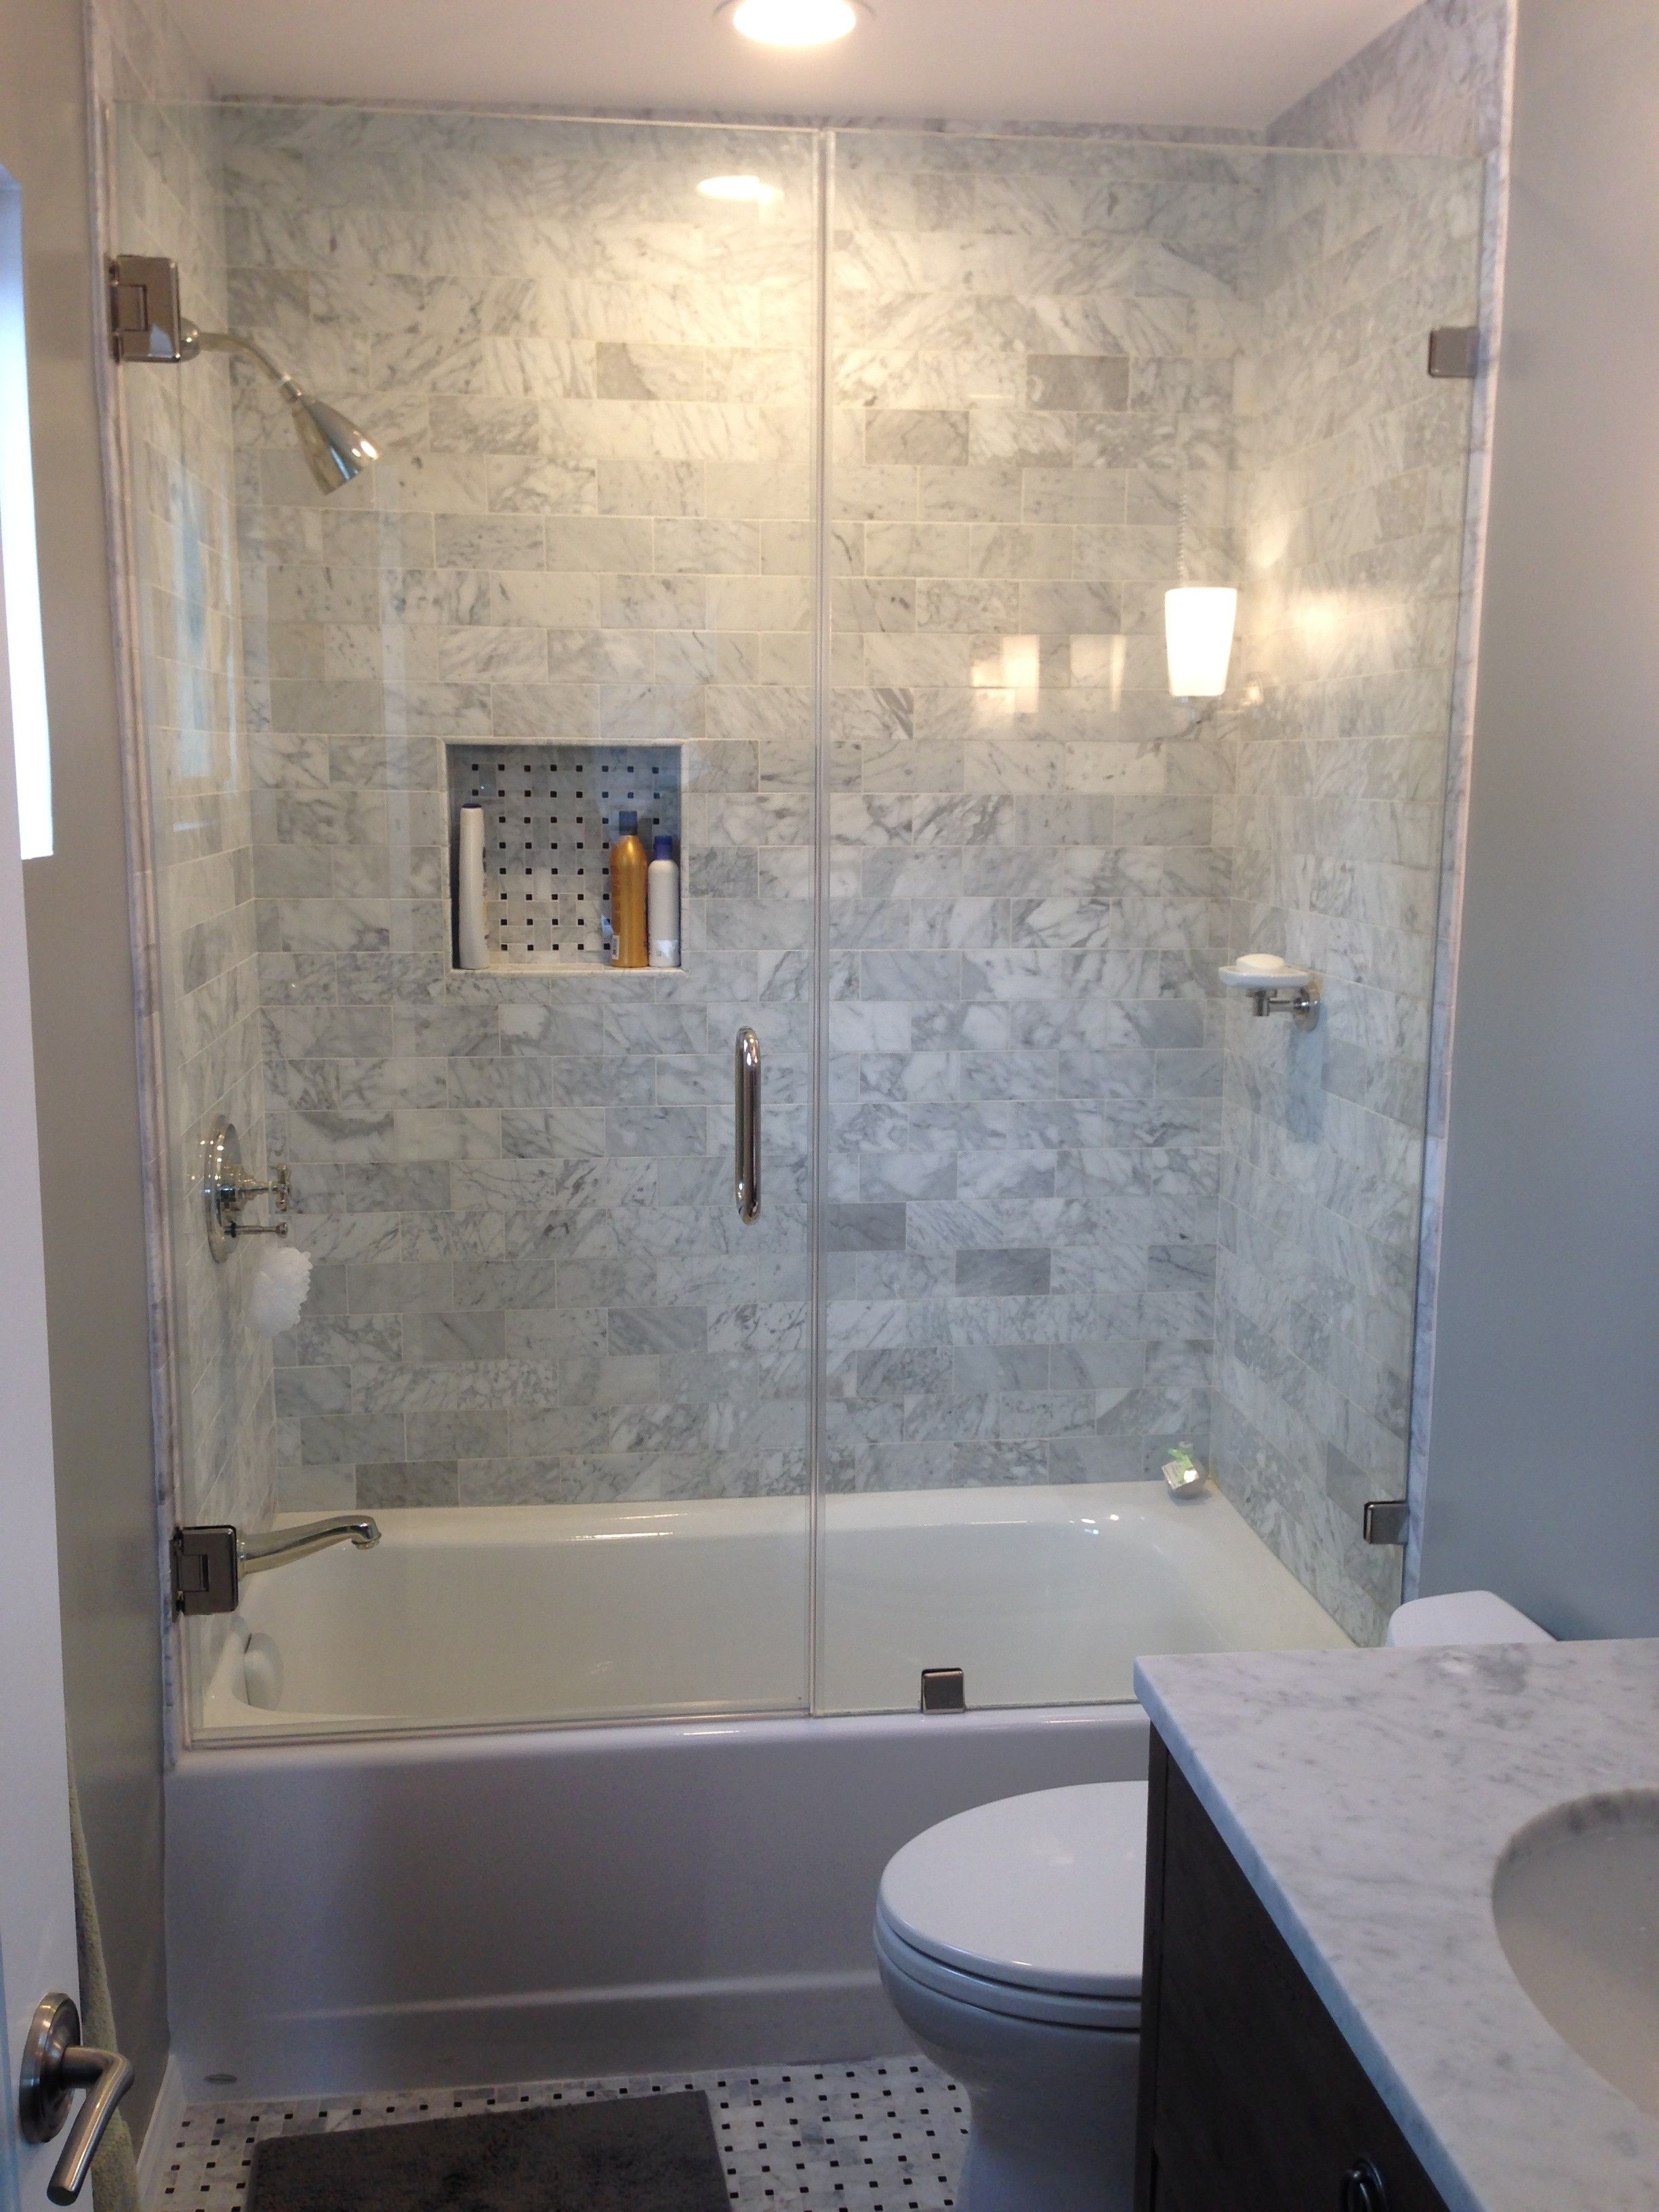 Very Small Bathroom That Have Bathtub And Shower Also Small Vanity Entrancing Idea For Small Bathroom Inspiration